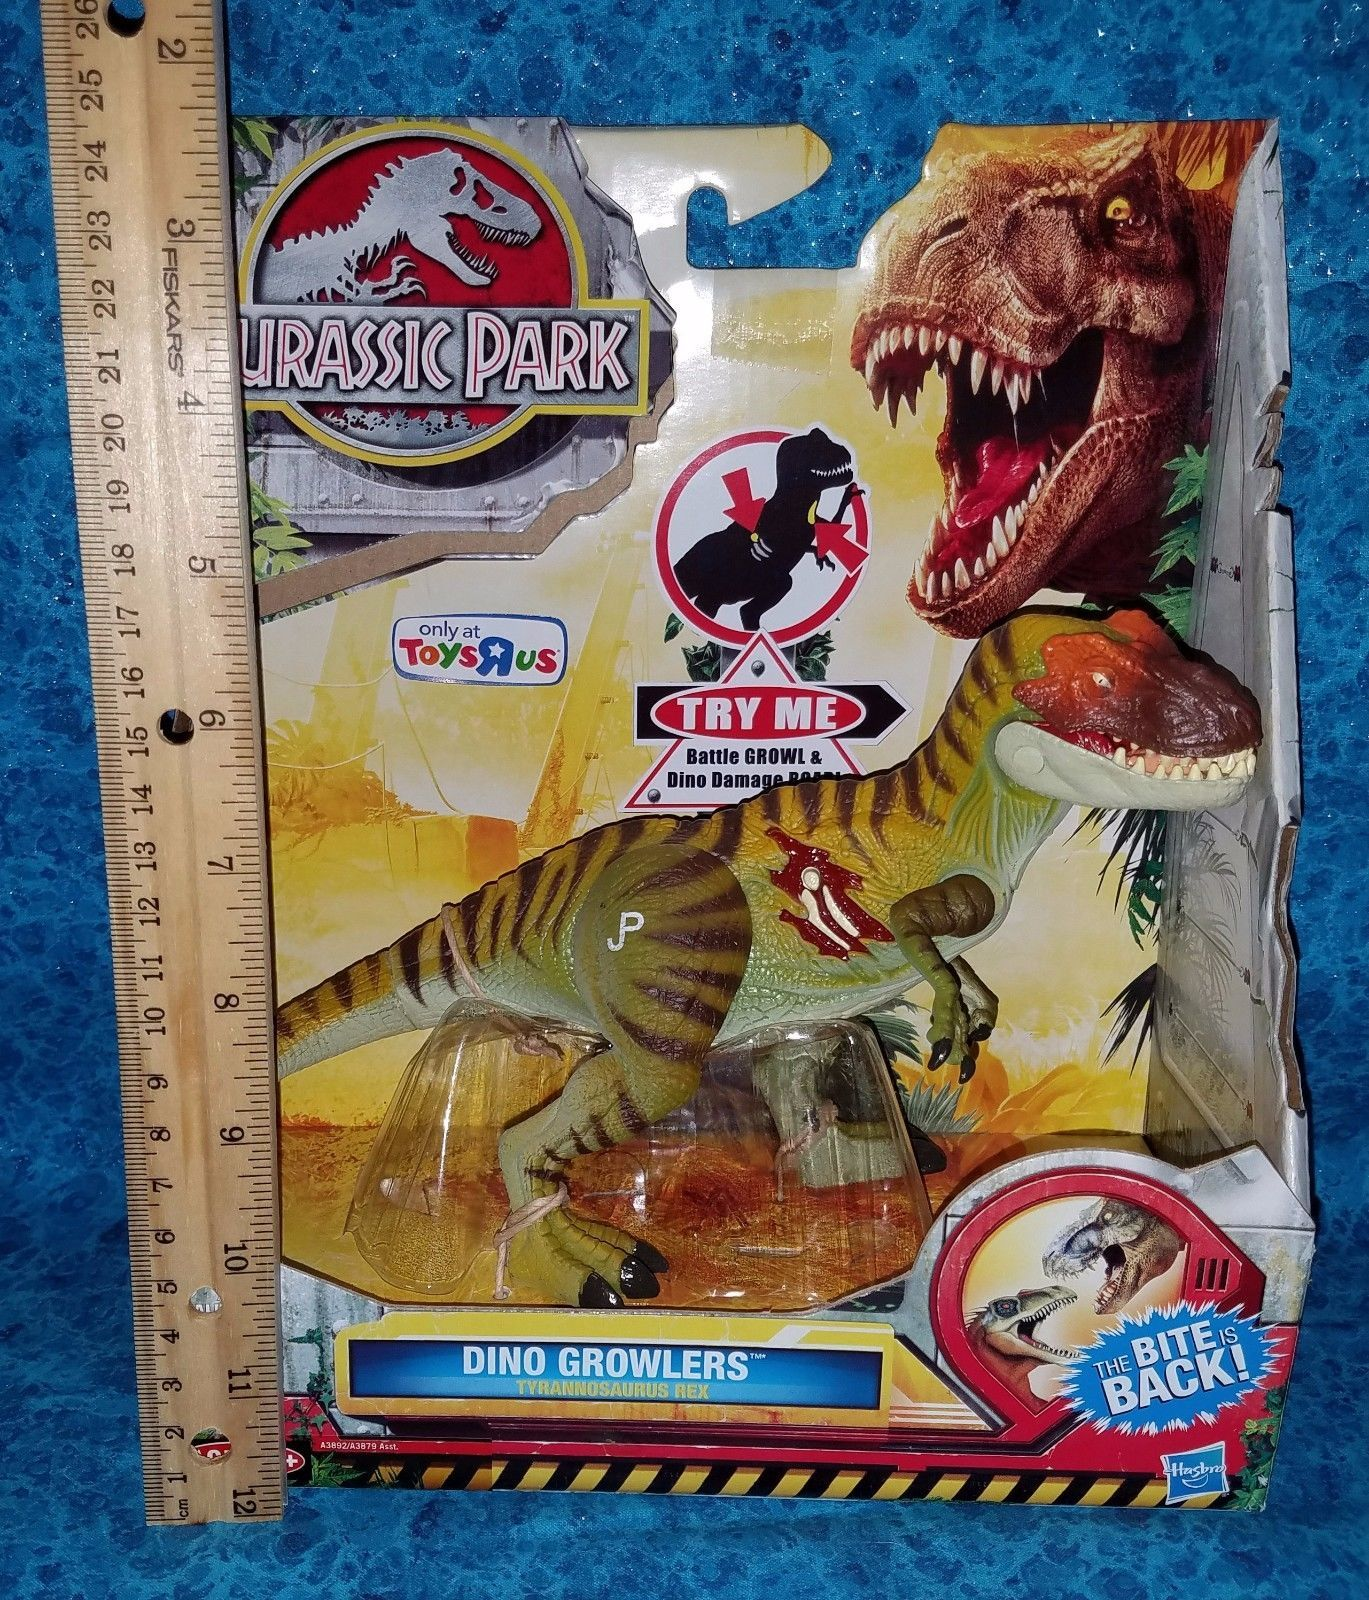 #Trending05 - Toys R Us Exclusive T-Rex Dinosaur Jurassic Park World Dino Growler RARE https://t.co/y4e07X72wU Ebay https://t.co/e7wVc8PXcI